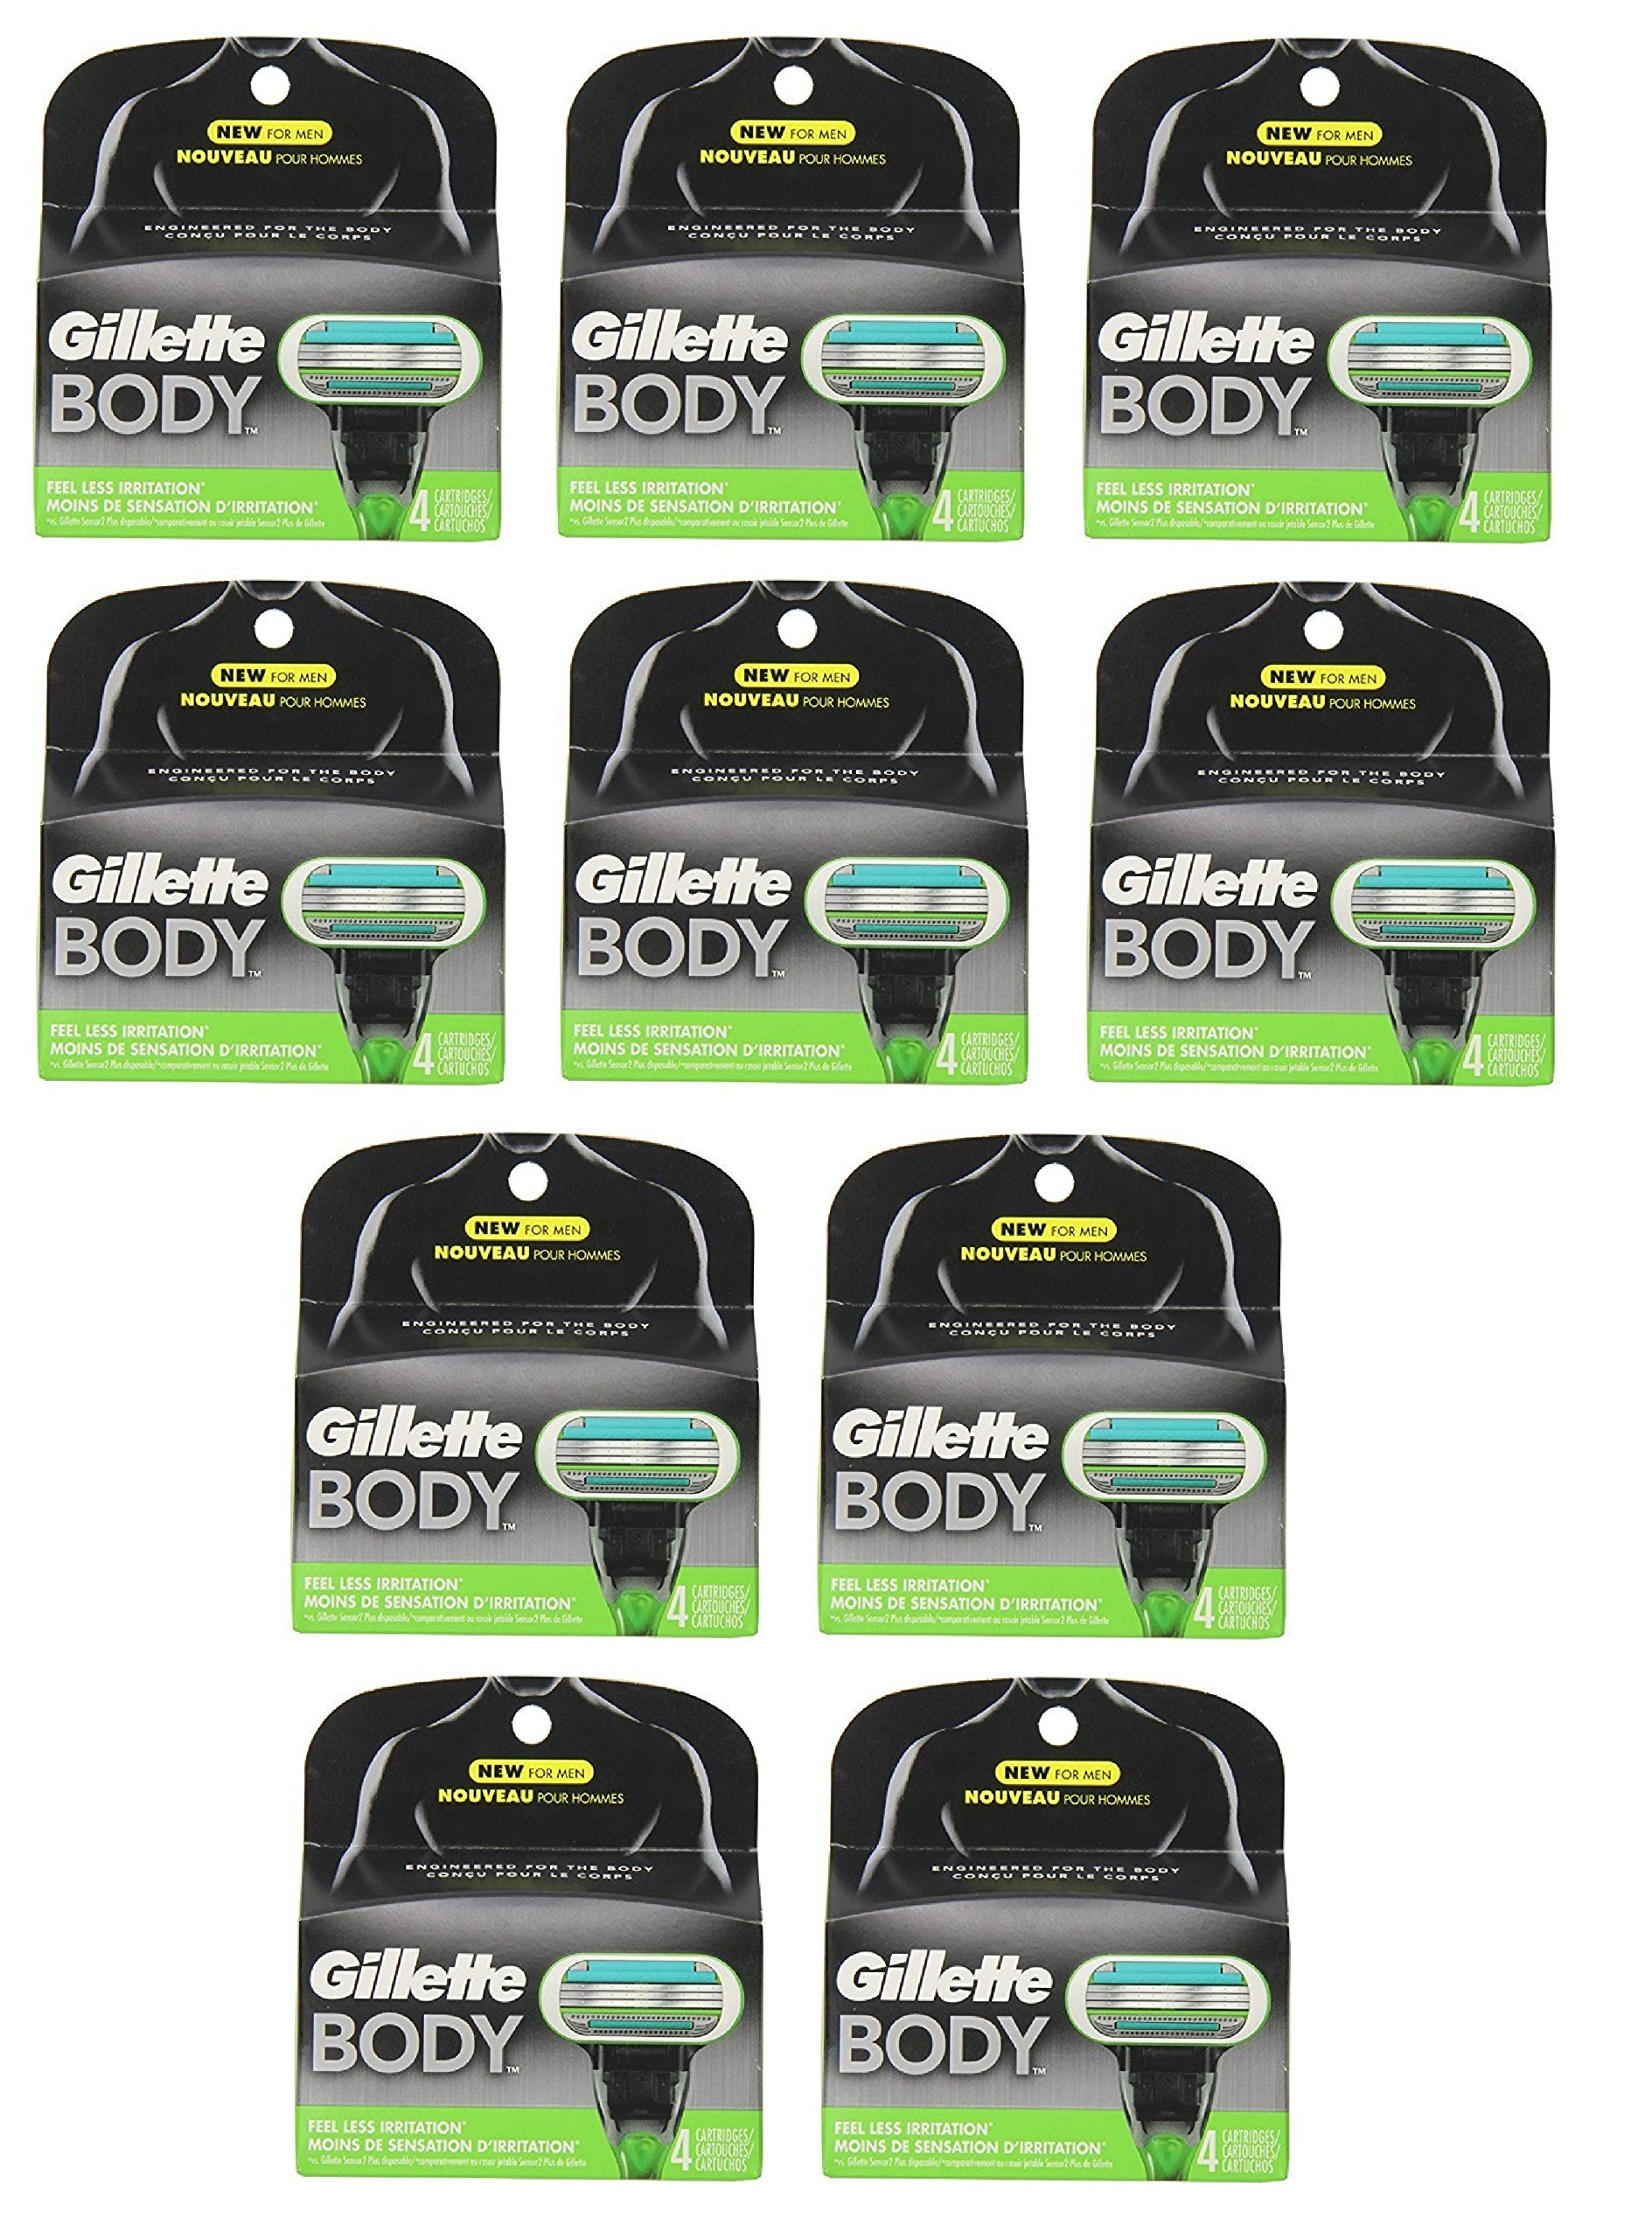 GlLLETE Body Refill Blade Cartridges, 4 Count (10 Pack)